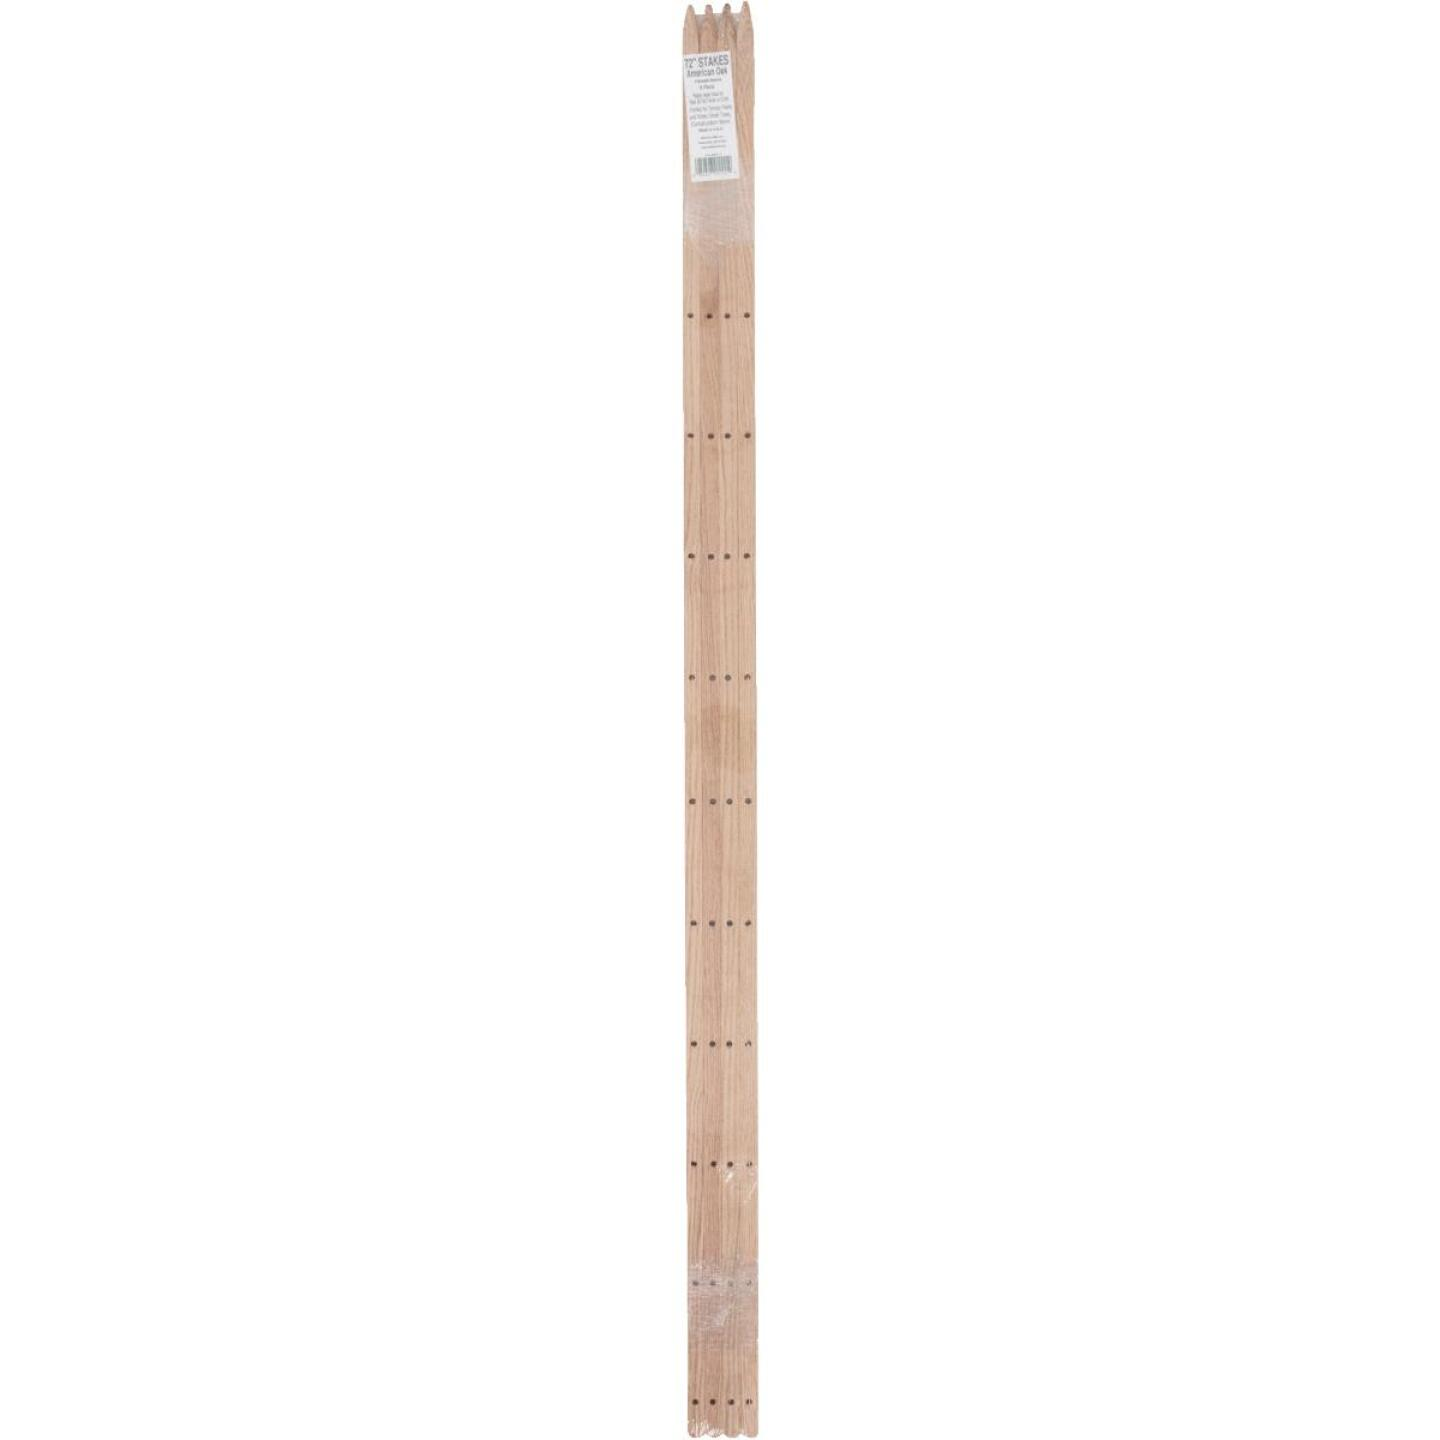 Madison Mill 72 In. Oak Wood Plant Stake (4-Pack) Image 2